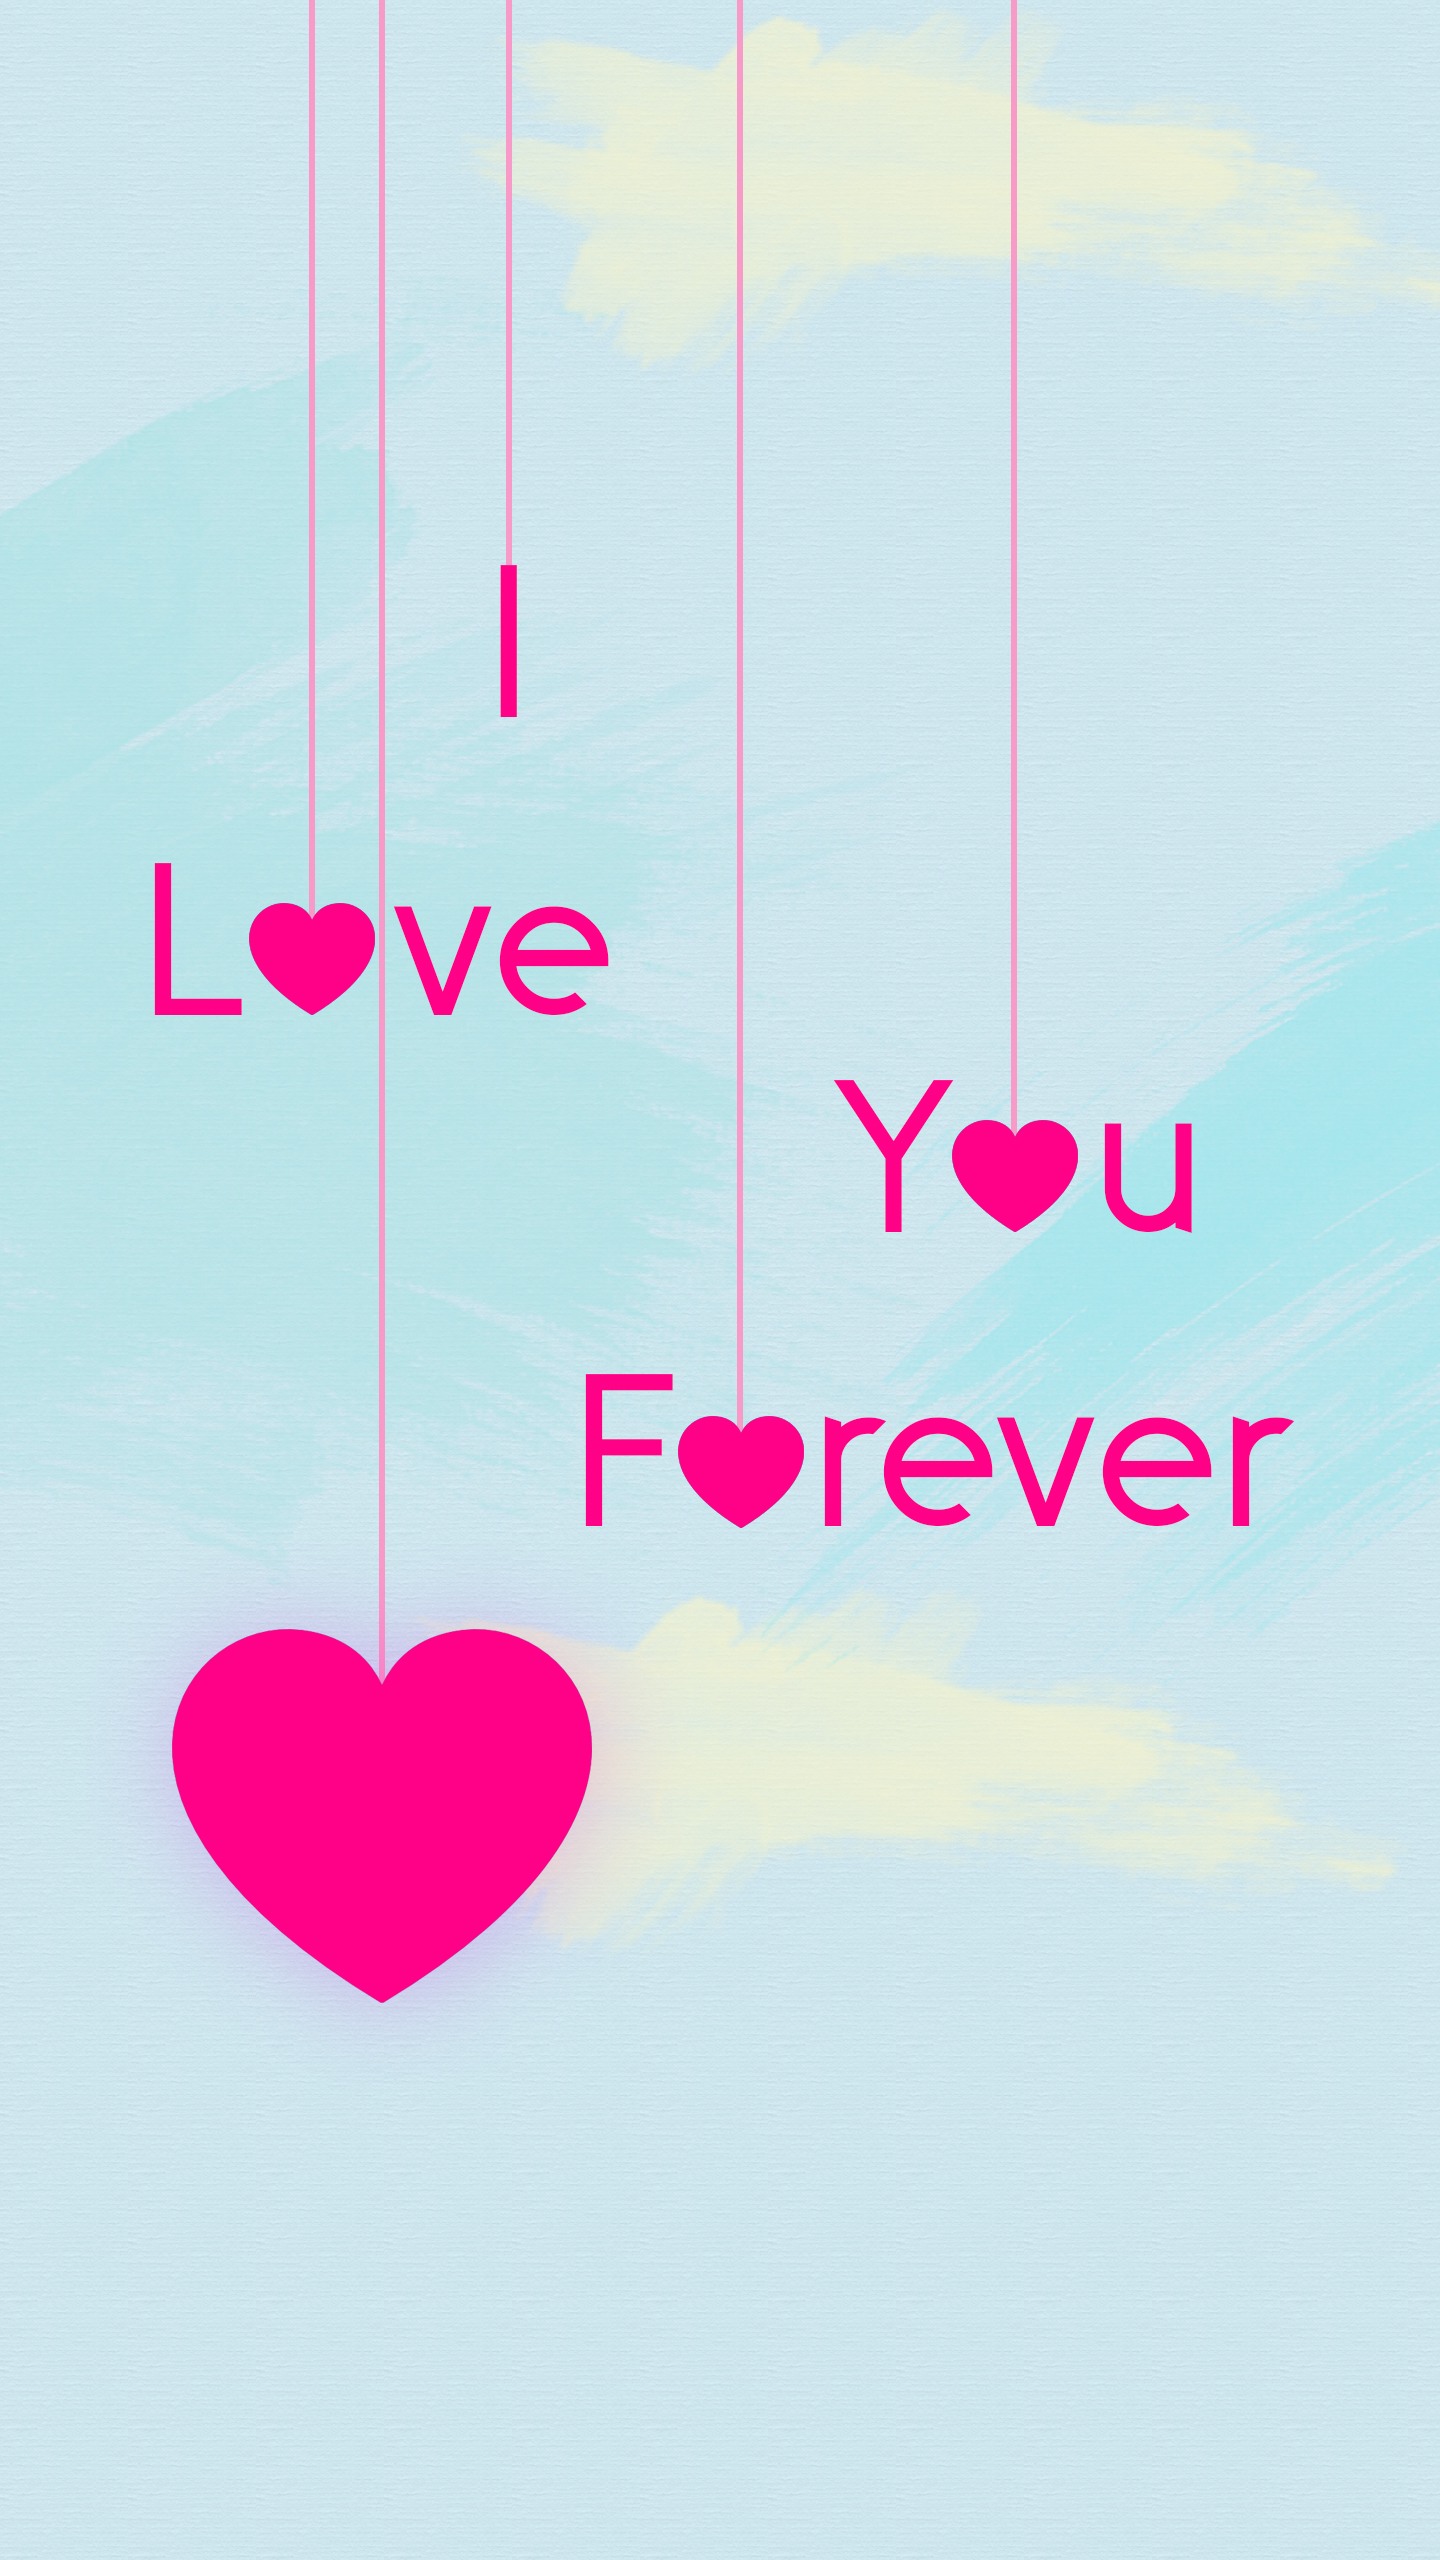 I Love You Forever Wallpapers Galaxy by Mattiebonez on DeviantArt